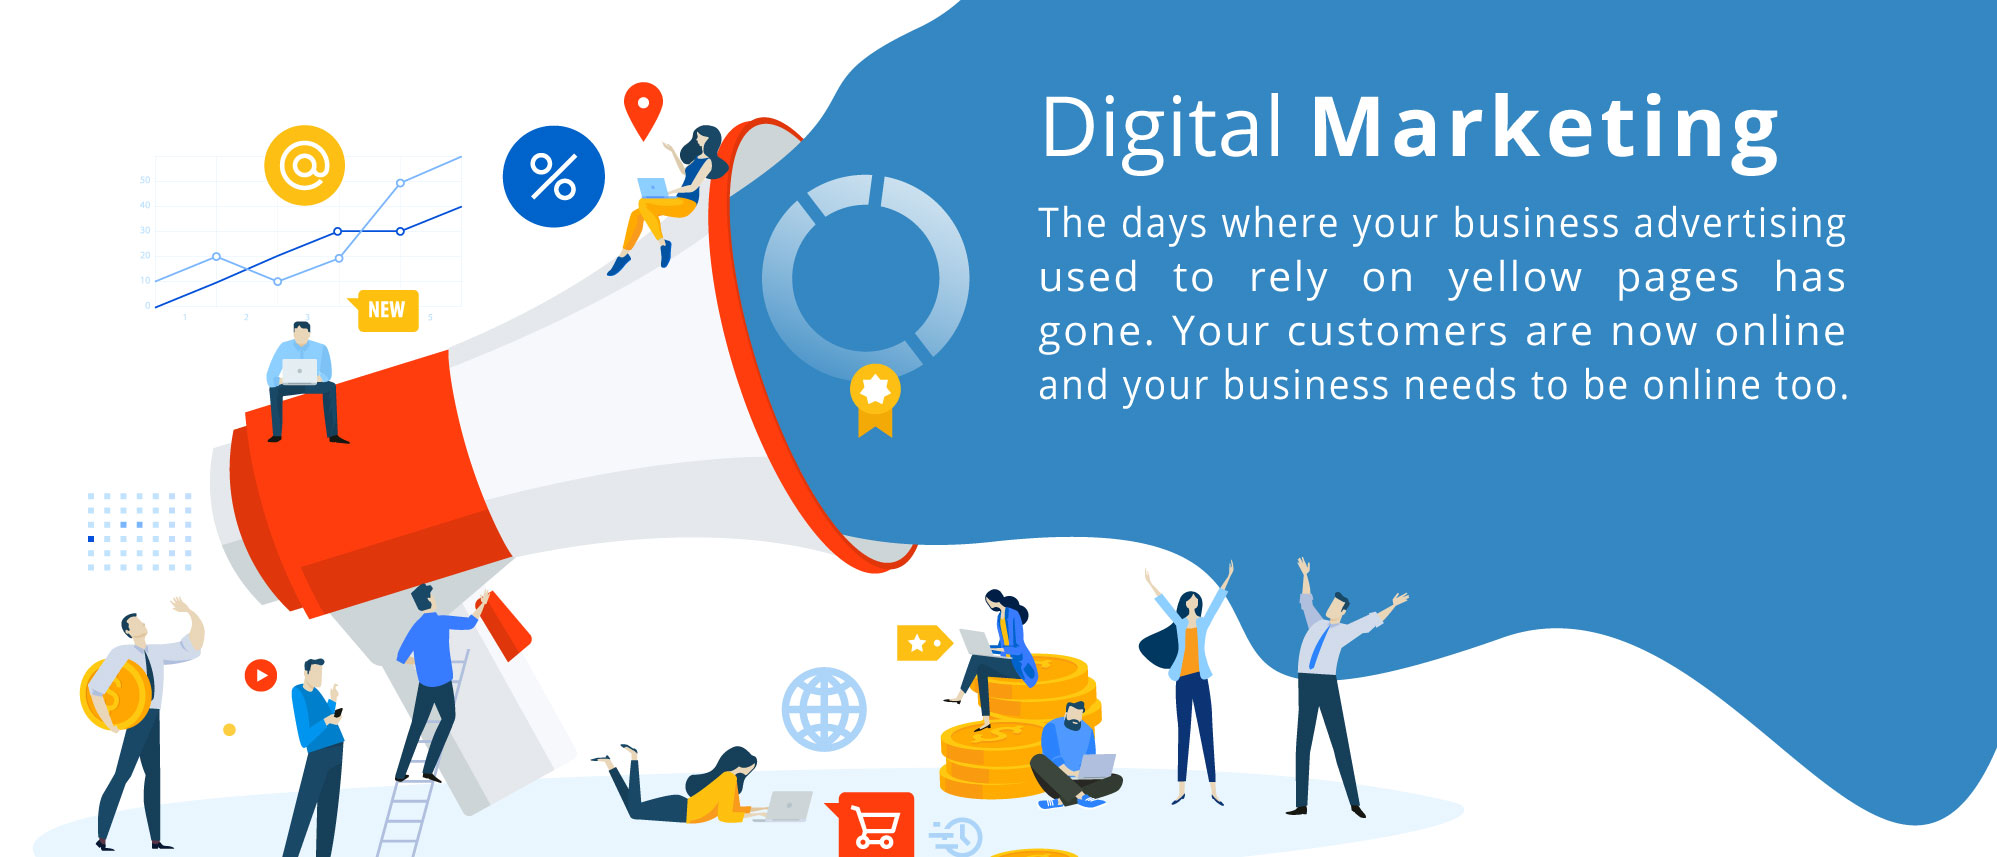 Digital Marketing, Digital Marketing Lebanon Beirut, Digital Marketing In Lebanon Beirut